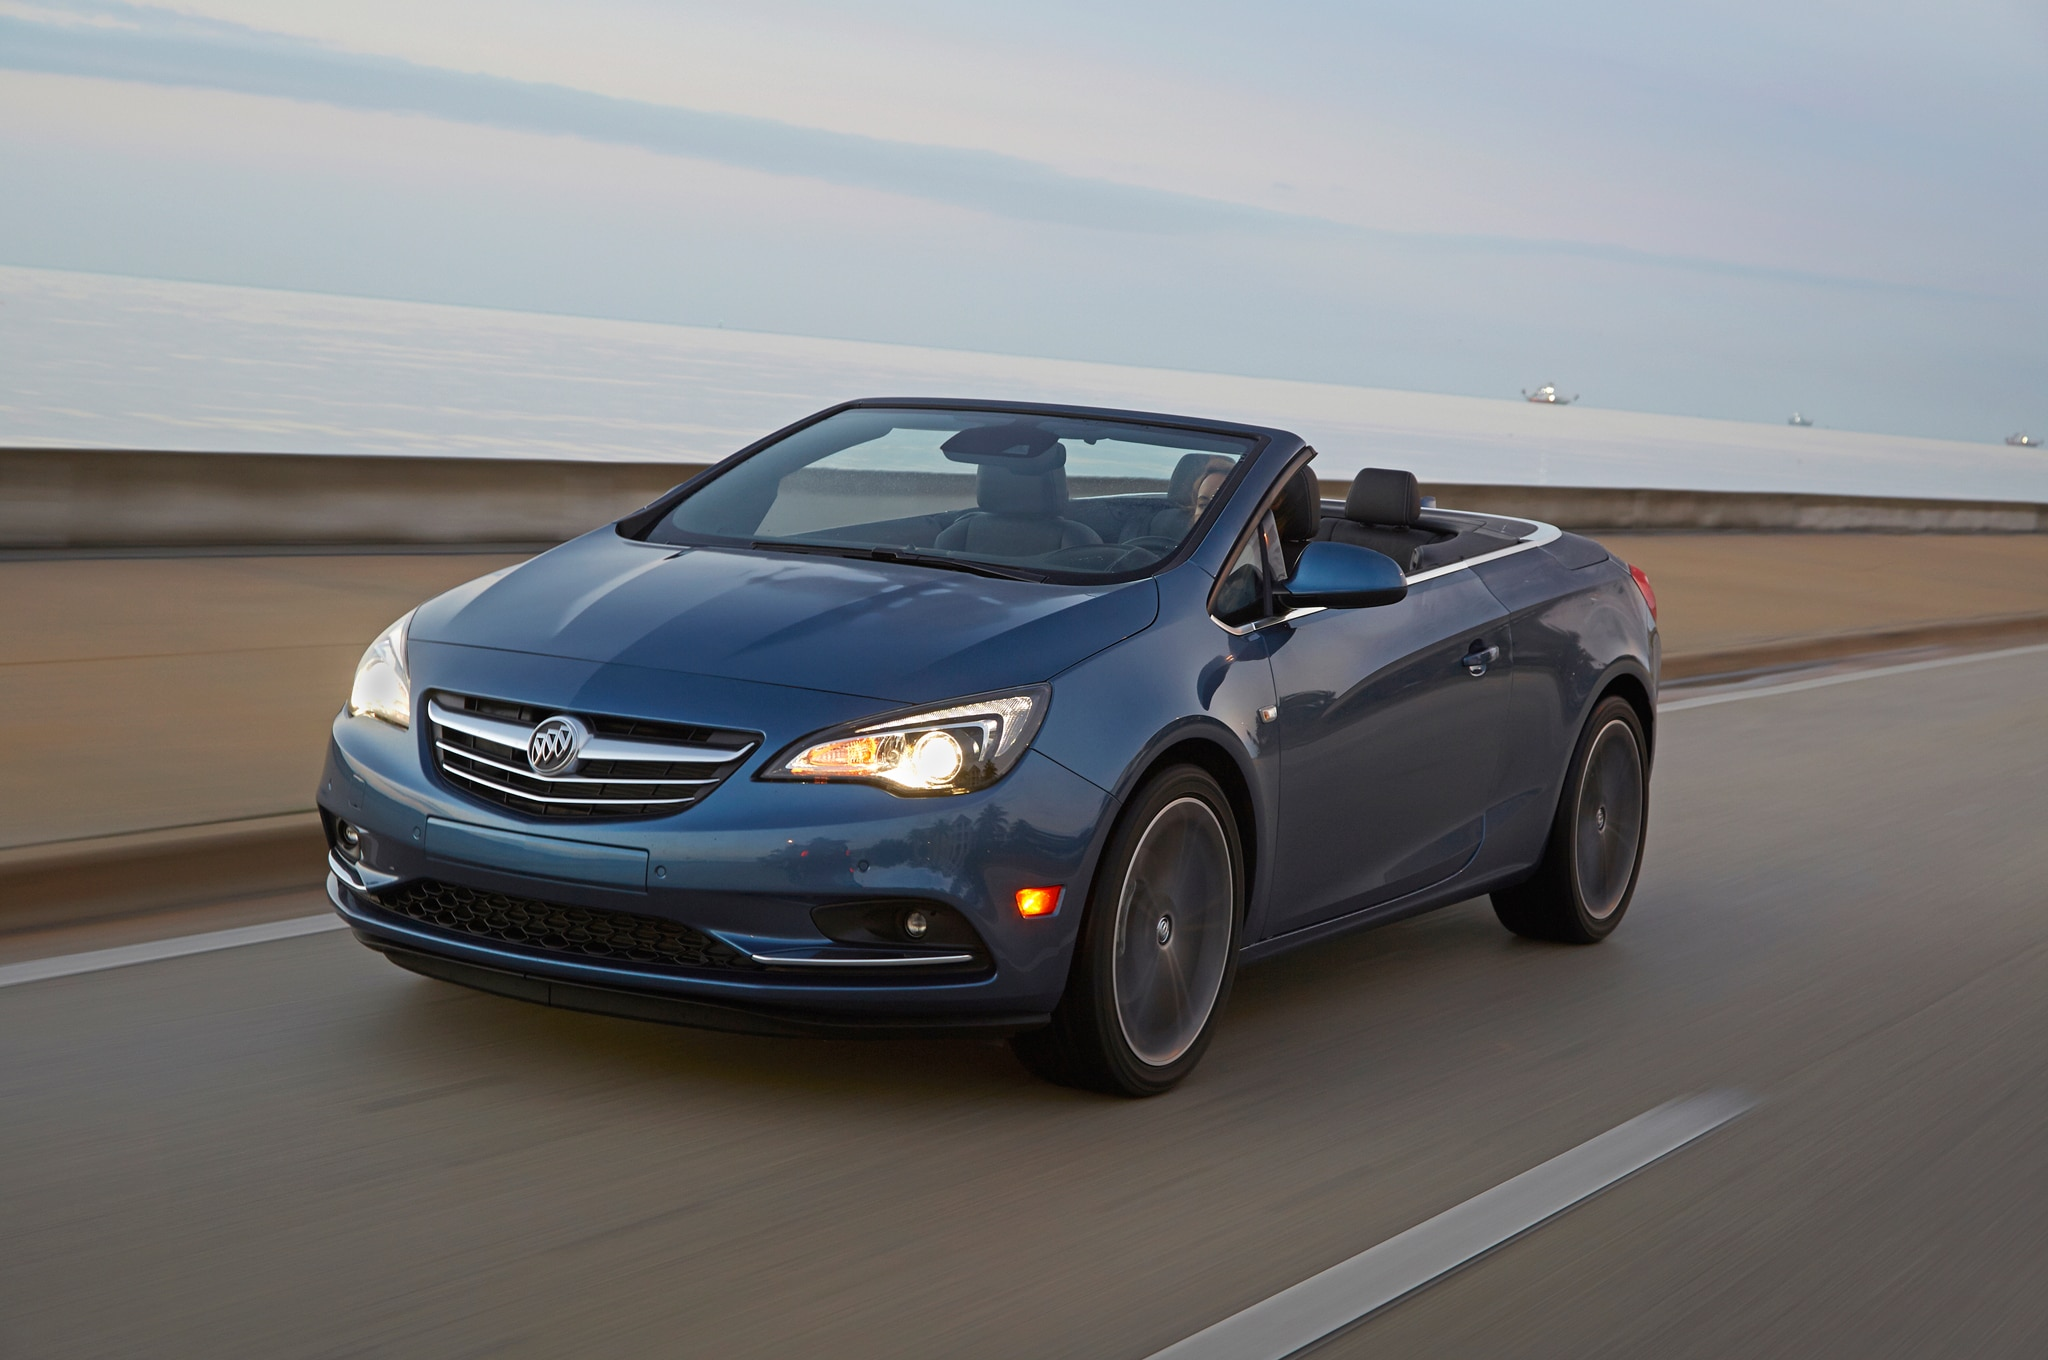 2016 Buick Cascada Convertible Front Three Quarter In Motion 03